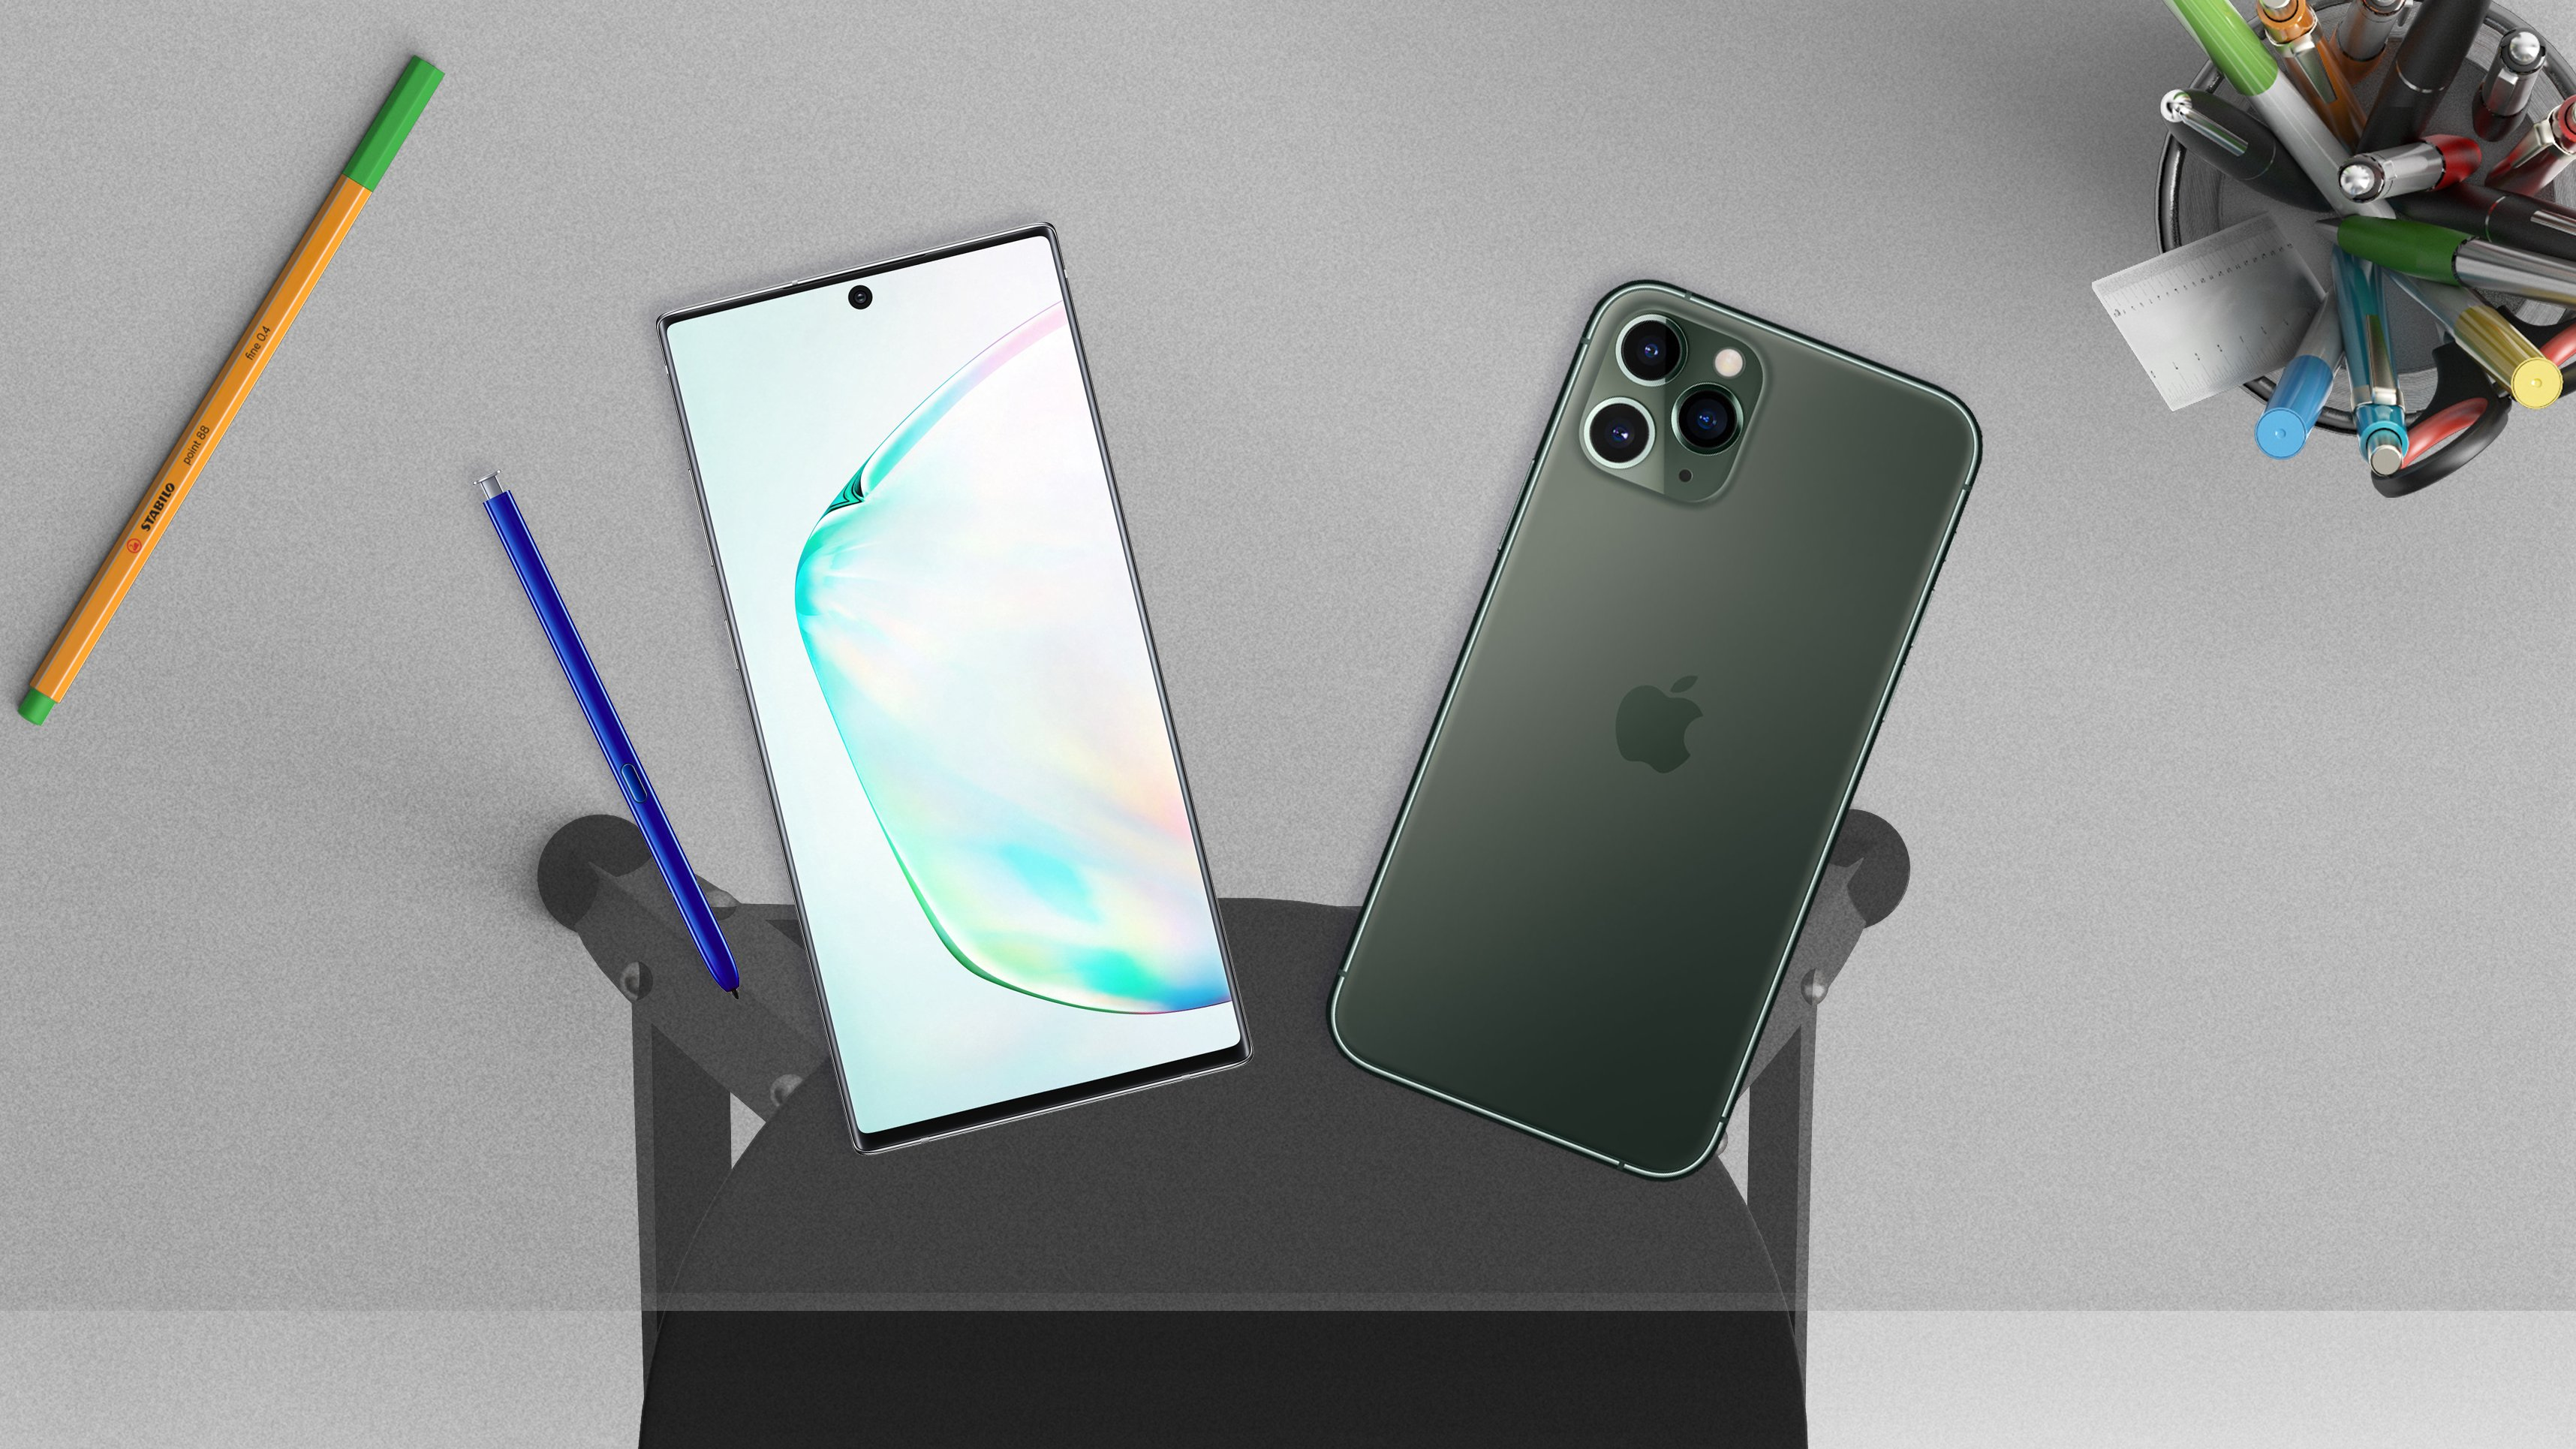 Битва титанов: Apple iPhone 11 Pro Max VS Samsung Galaxy Note 10+